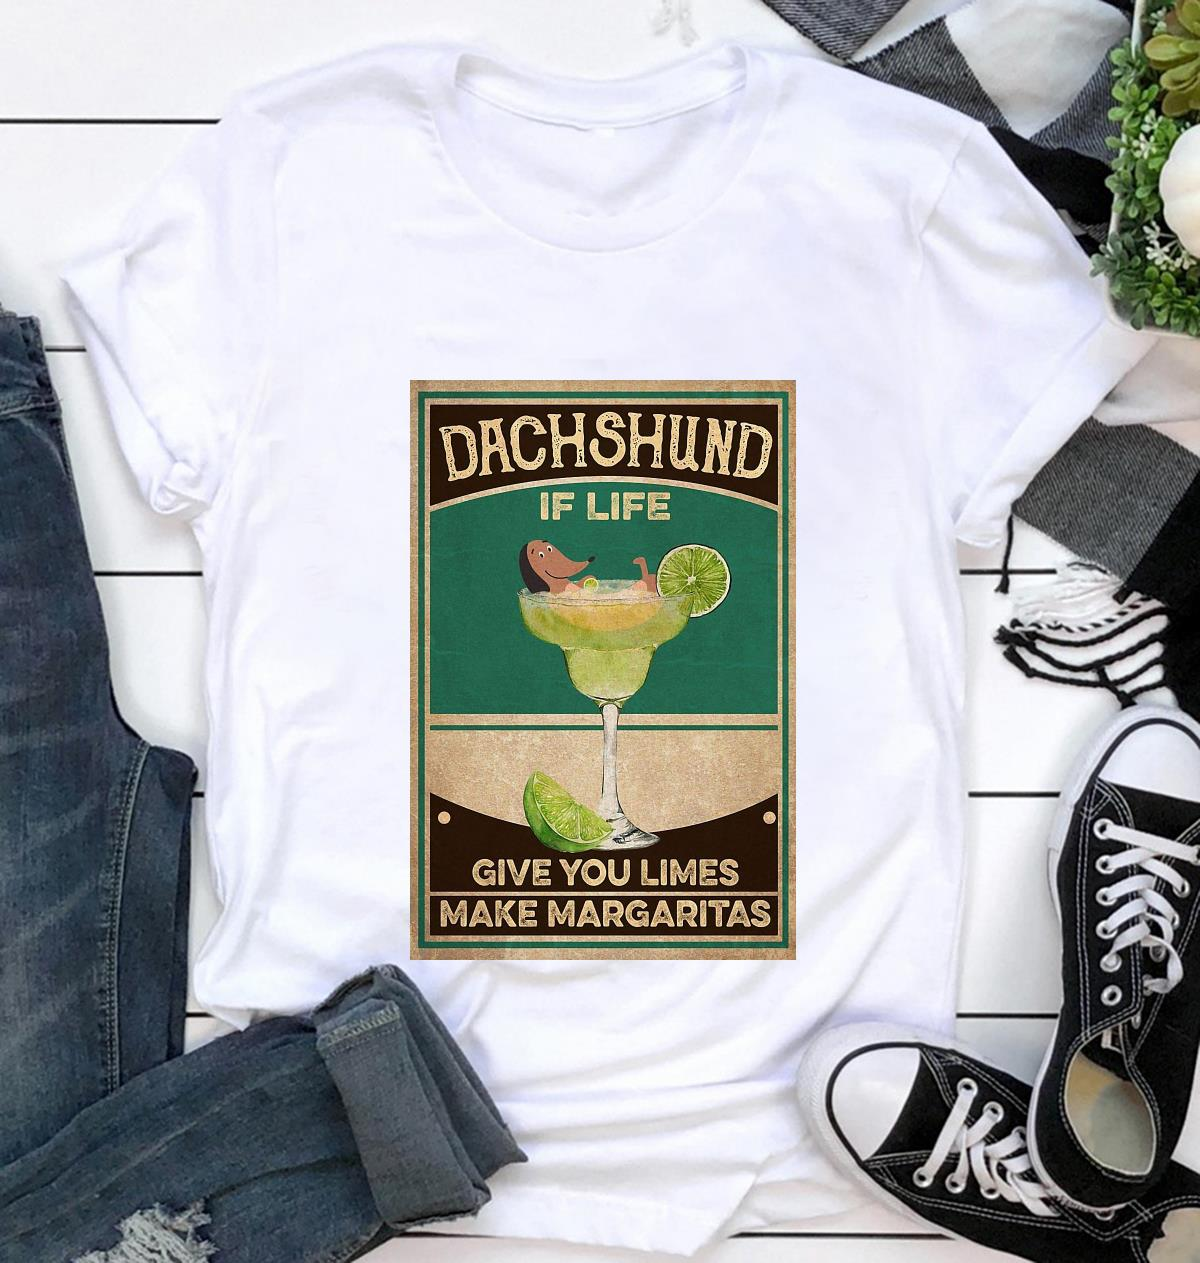 Dachshund if life give you limes make margaritas poster t-shirt